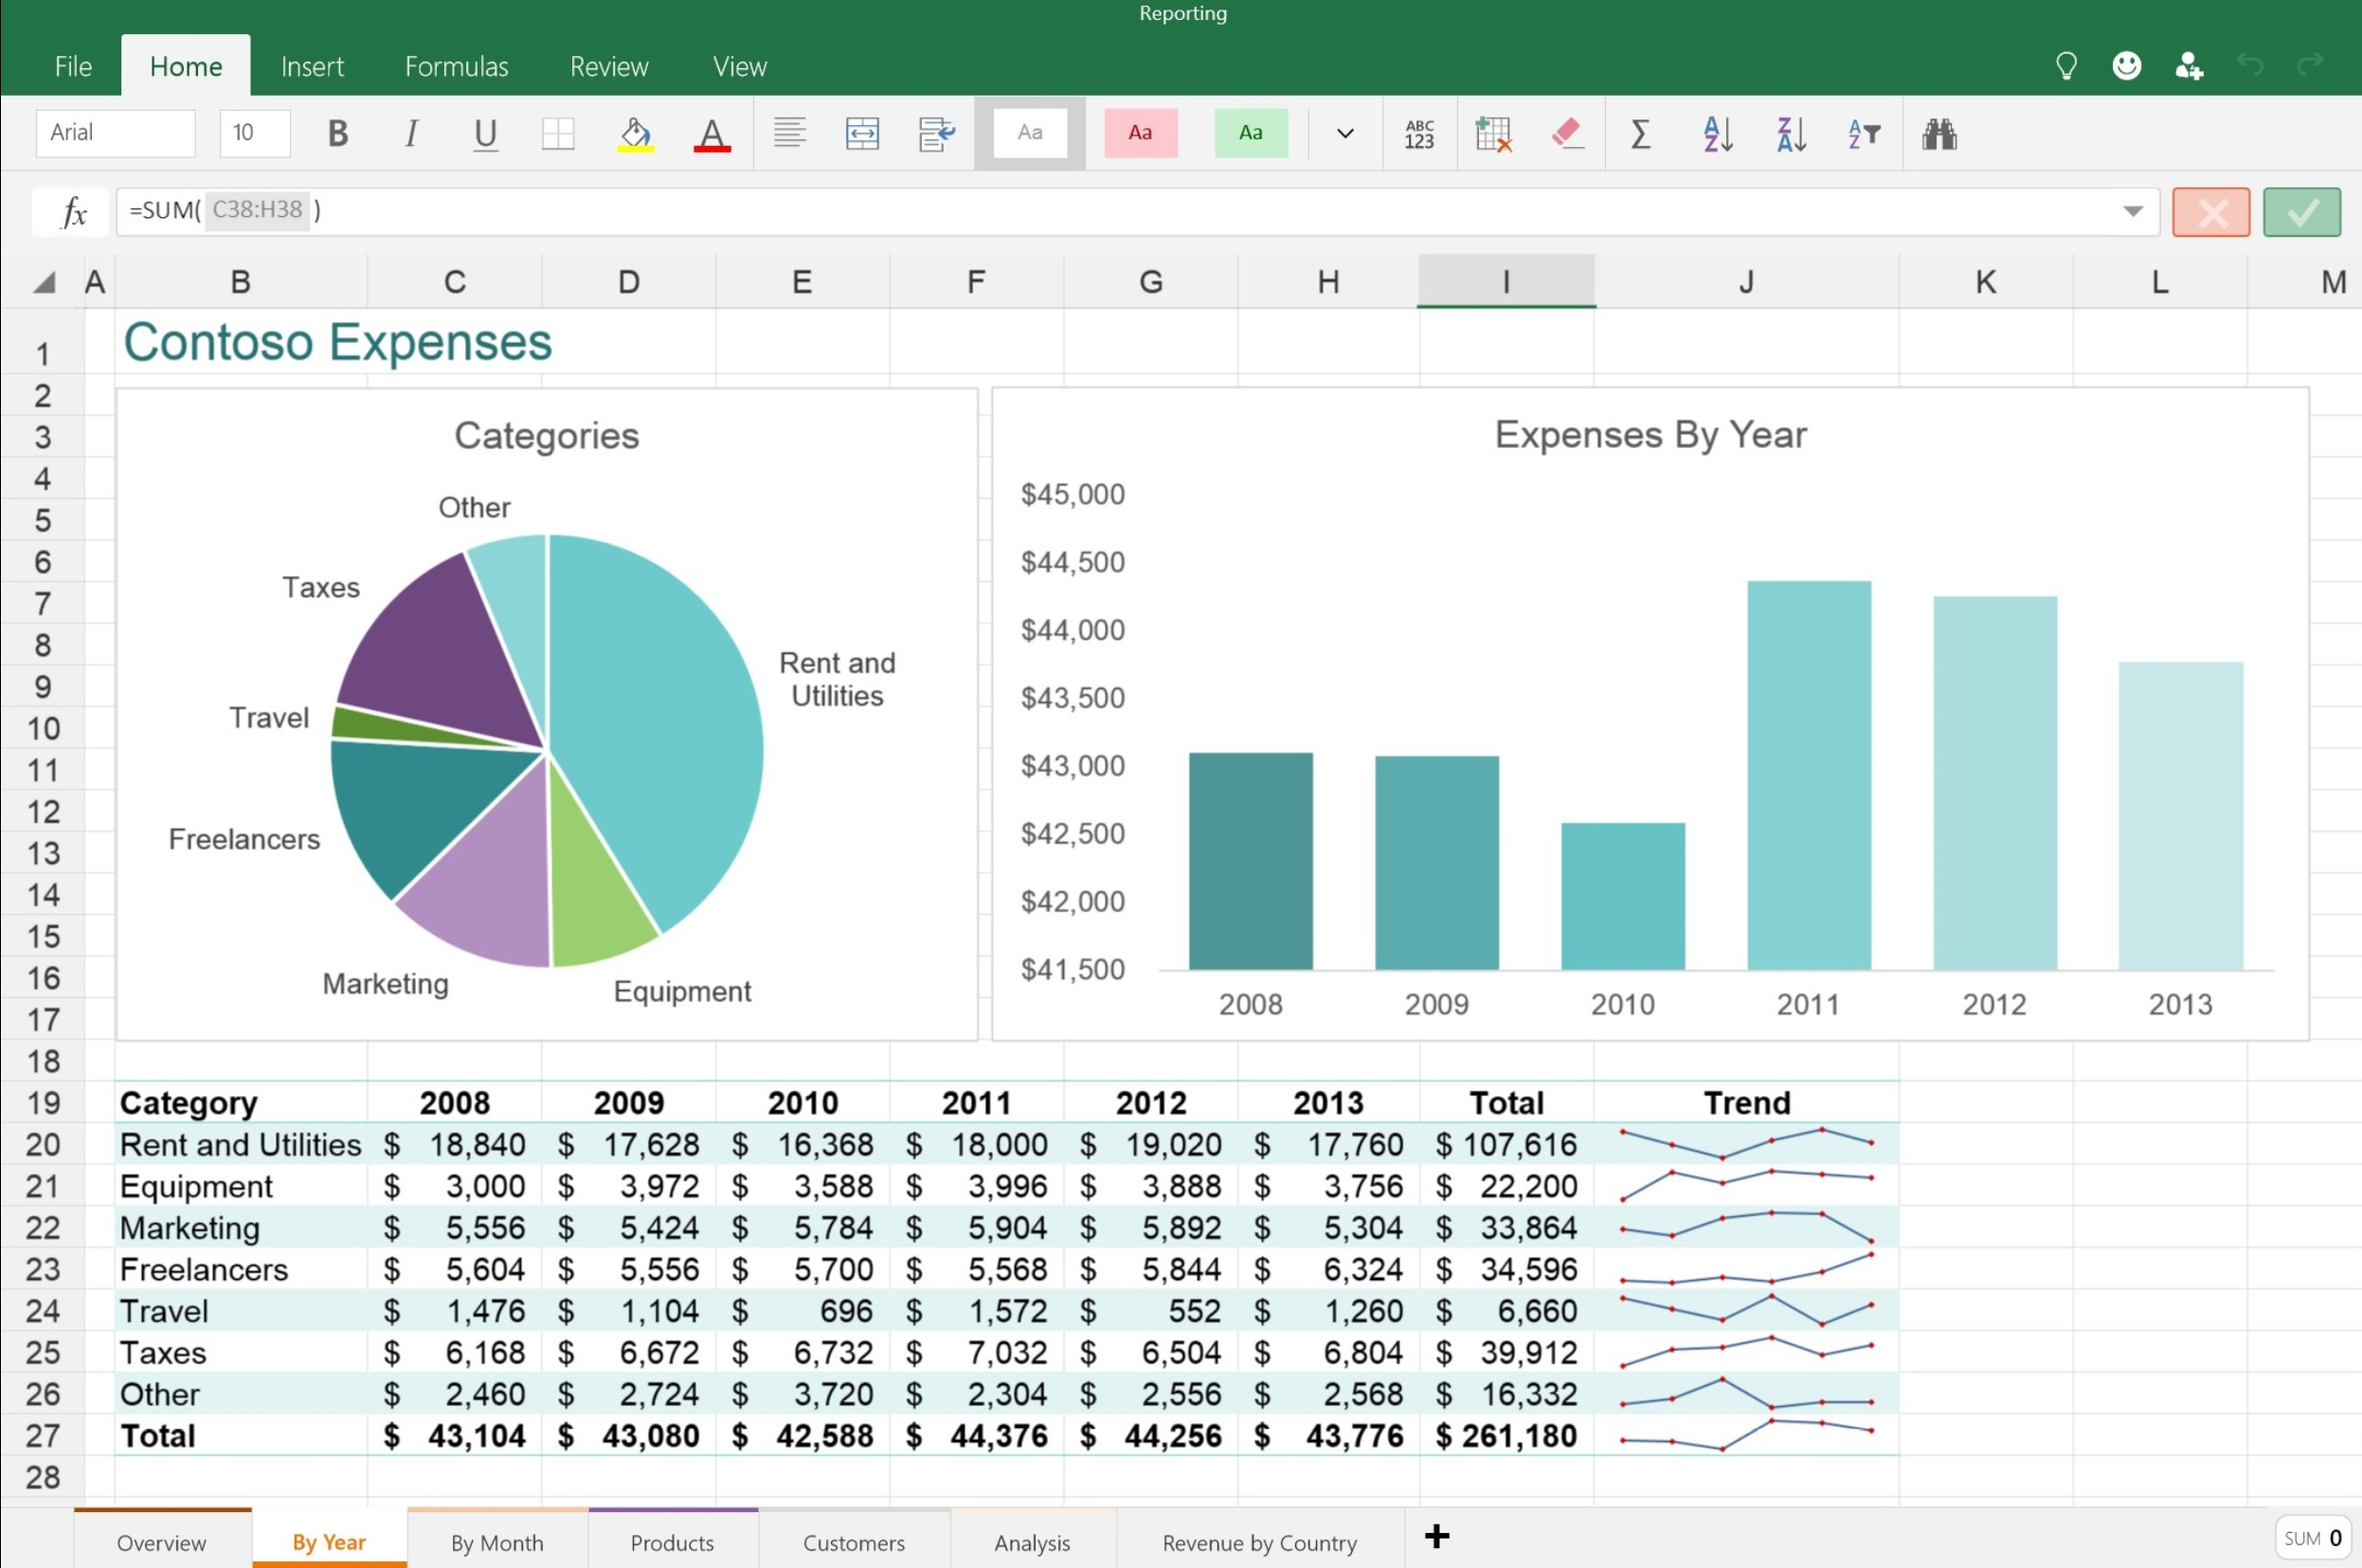 Ediblewildsus  Prepossessing Features Available In The New Word Excel And Powerpoint Apps For  With Exciting Excel Touch App  With Nice Data Filter Excel Also How Do I Make A Graph On Excel In Addition Add Up Columns In Excel And Stock Chart In Excel As Well As Countif Formula In Excel  Additionally Remove Macro From Excel From Mspowerusercom With Ediblewildsus  Exciting Features Available In The New Word Excel And Powerpoint Apps For  With Nice Excel Touch App  And Prepossessing Data Filter Excel Also How Do I Make A Graph On Excel In Addition Add Up Columns In Excel From Mspowerusercom